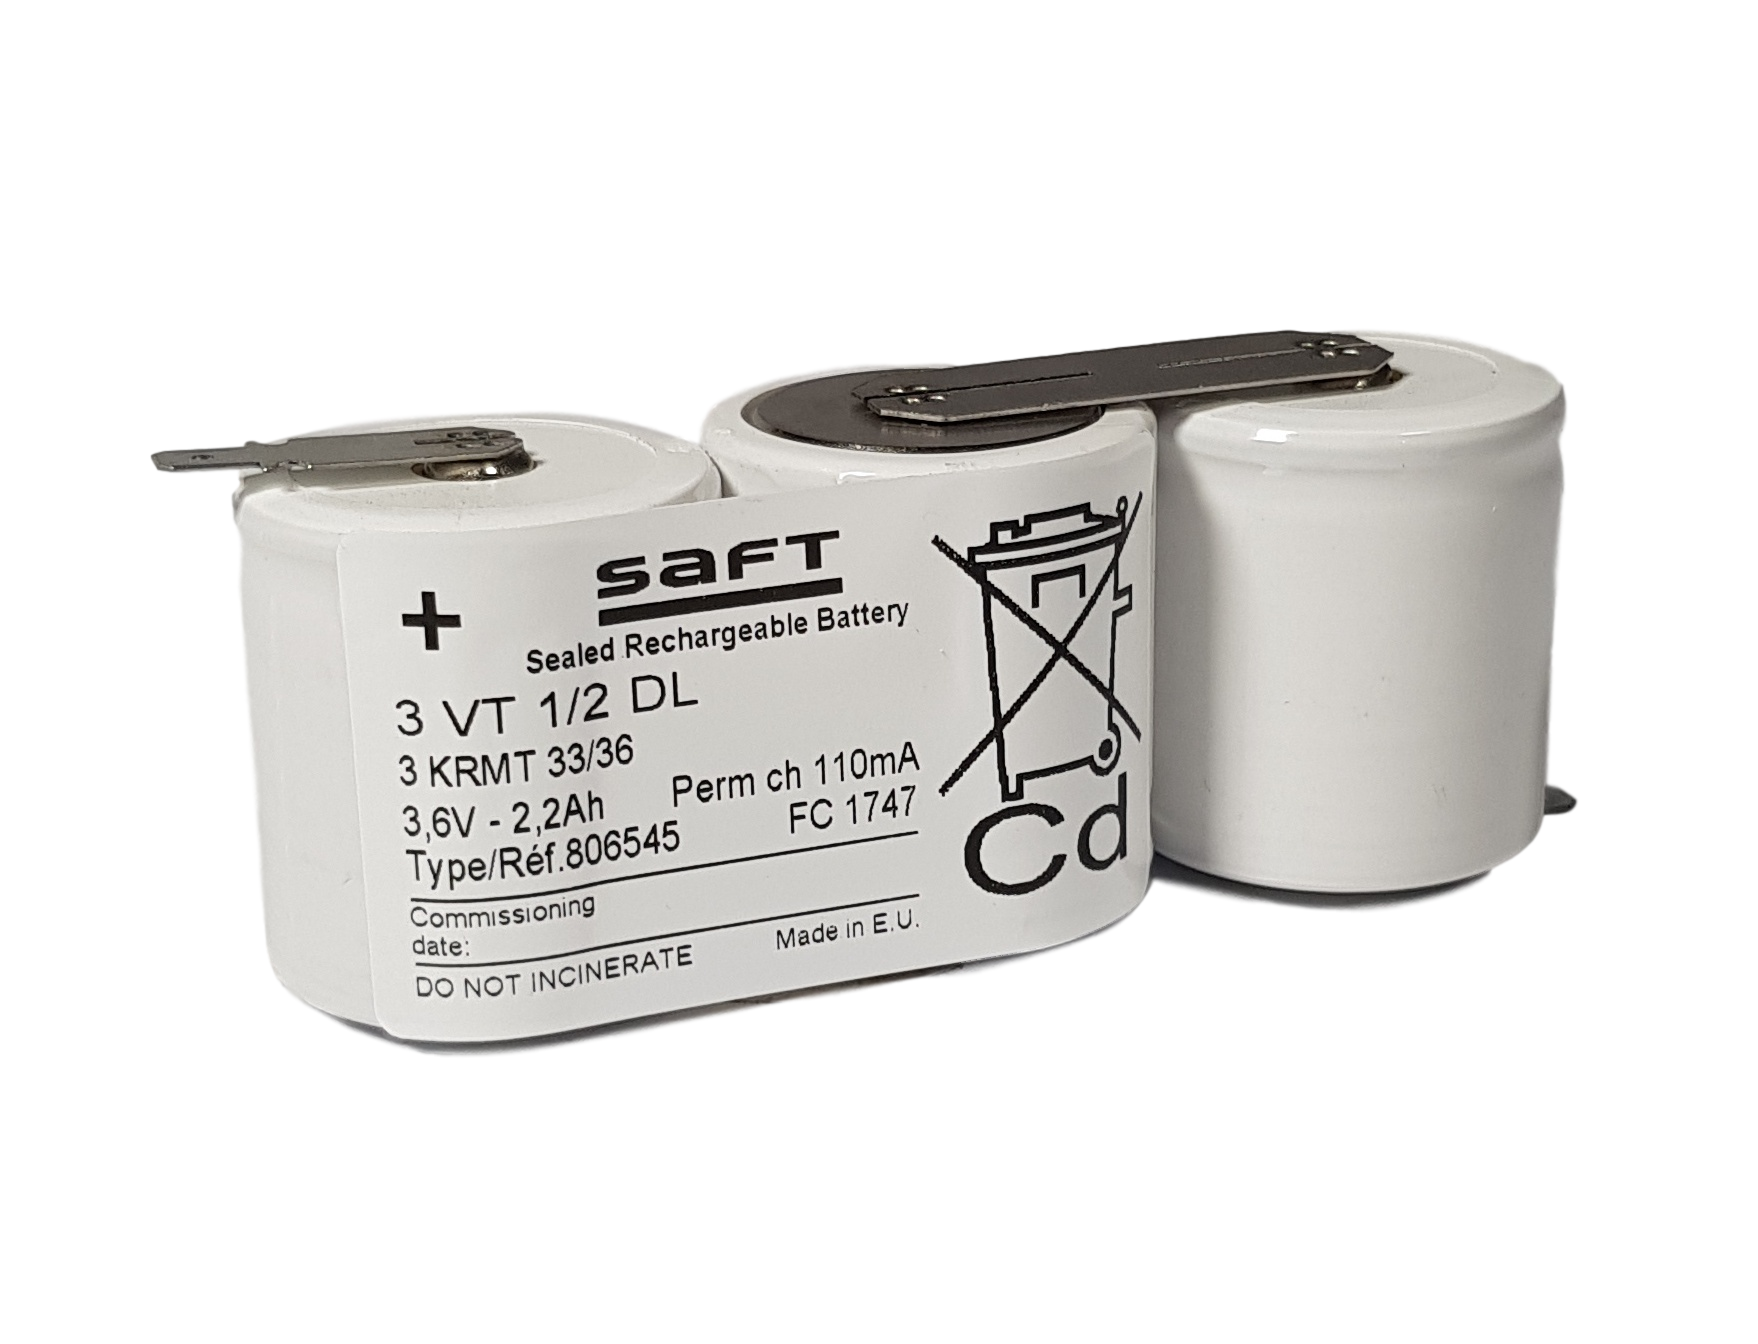 Arts Energy (Saft) NiCd 3,6V 2200mAh 3x1/2D VT side by side met S11 aansluiting